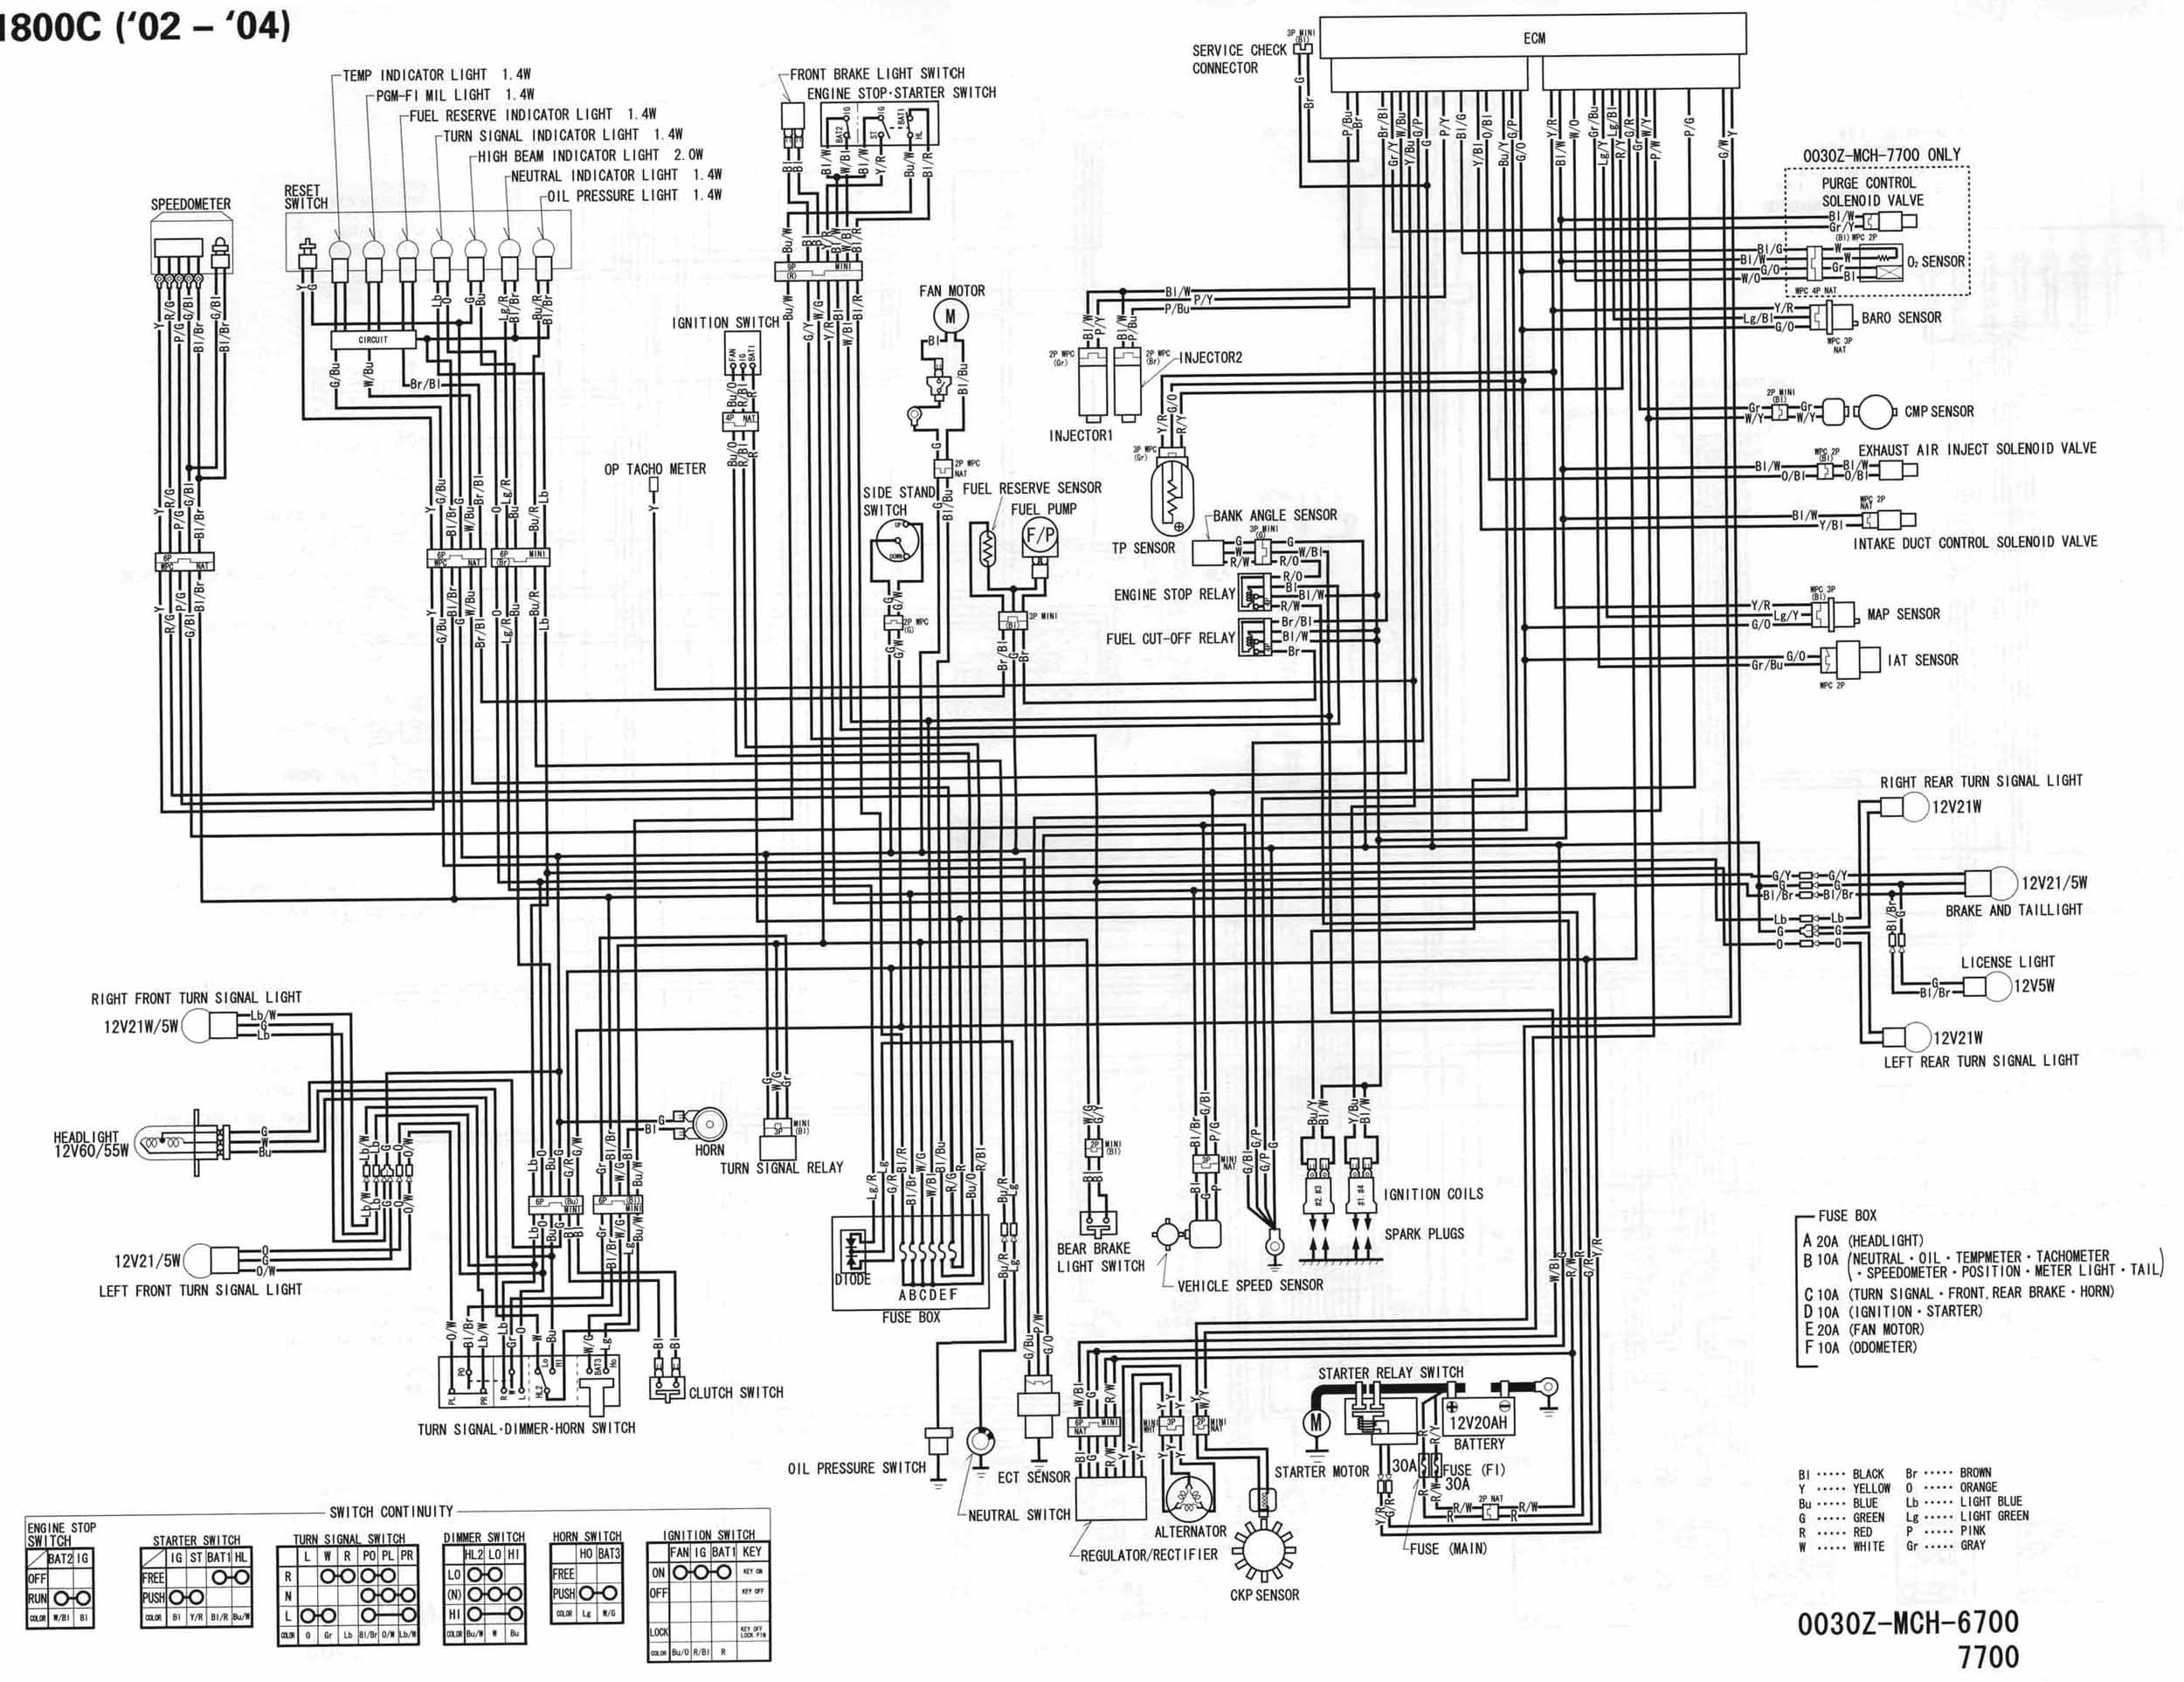 02 04_VTX1800_C_schematic motorcycle wire schematics bareass choppers motorcycle tech pages  at bayanpartner.co